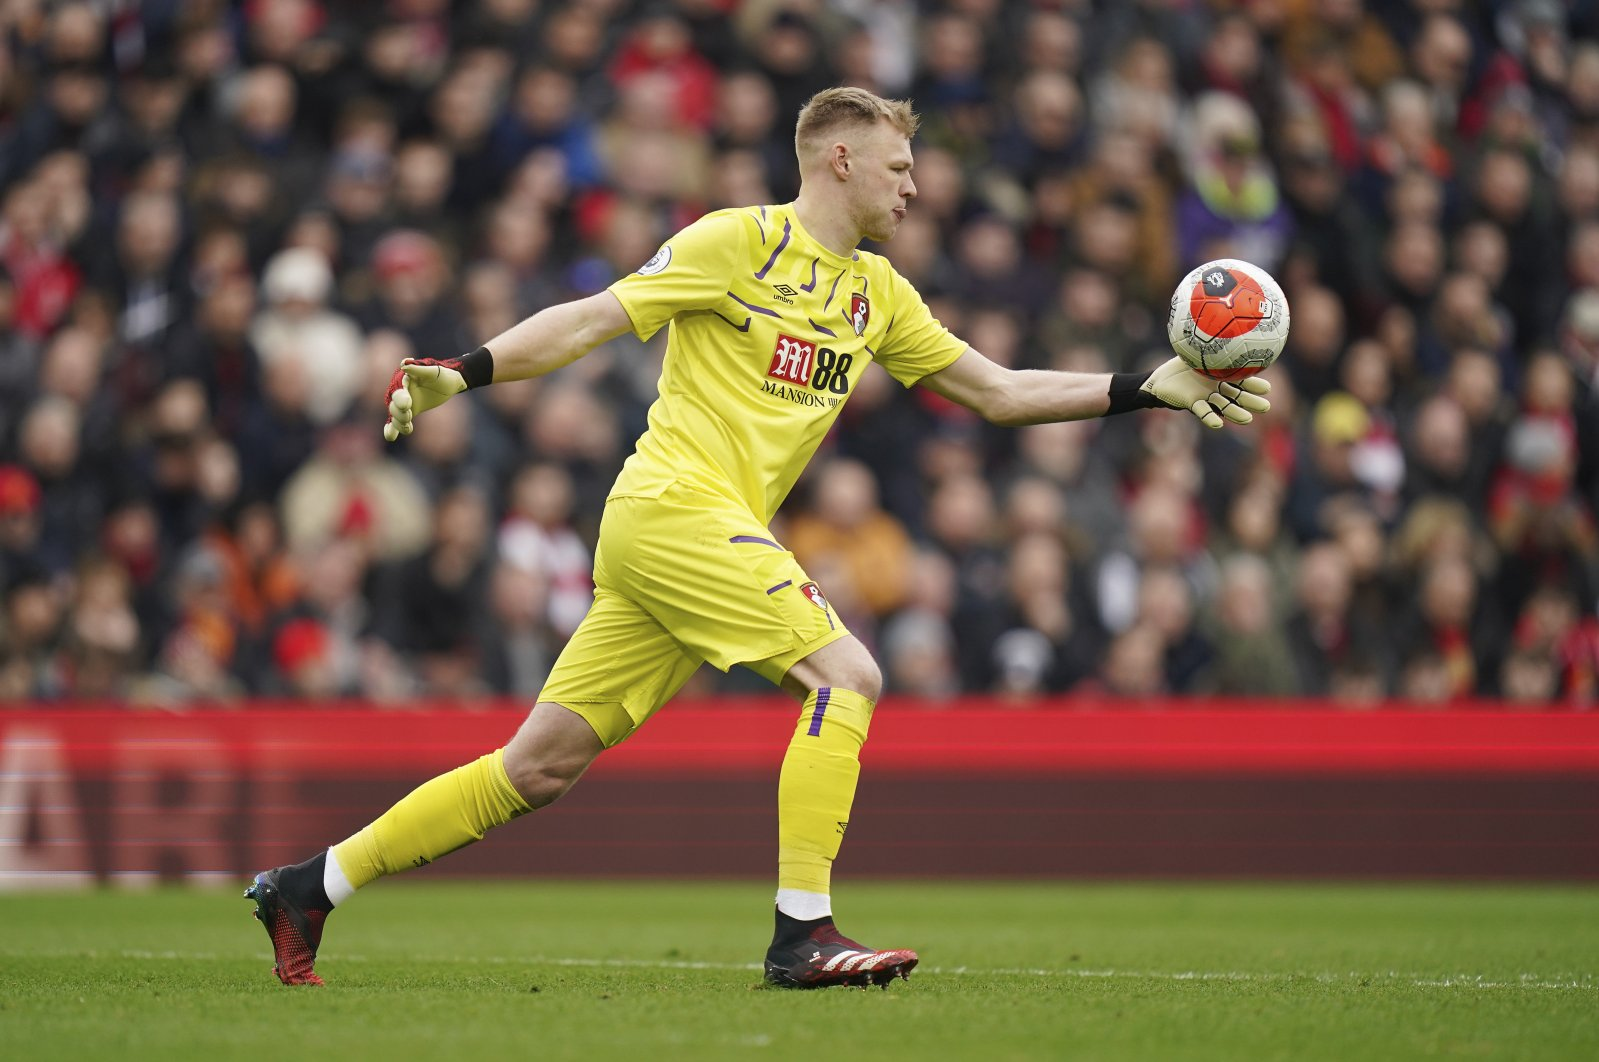 Bournemouth's goalkeeper Aaron Ramsdale prepares to kick the ball during a Premier League match, Liverpool, England, March 7, 2020. (AP Photo)